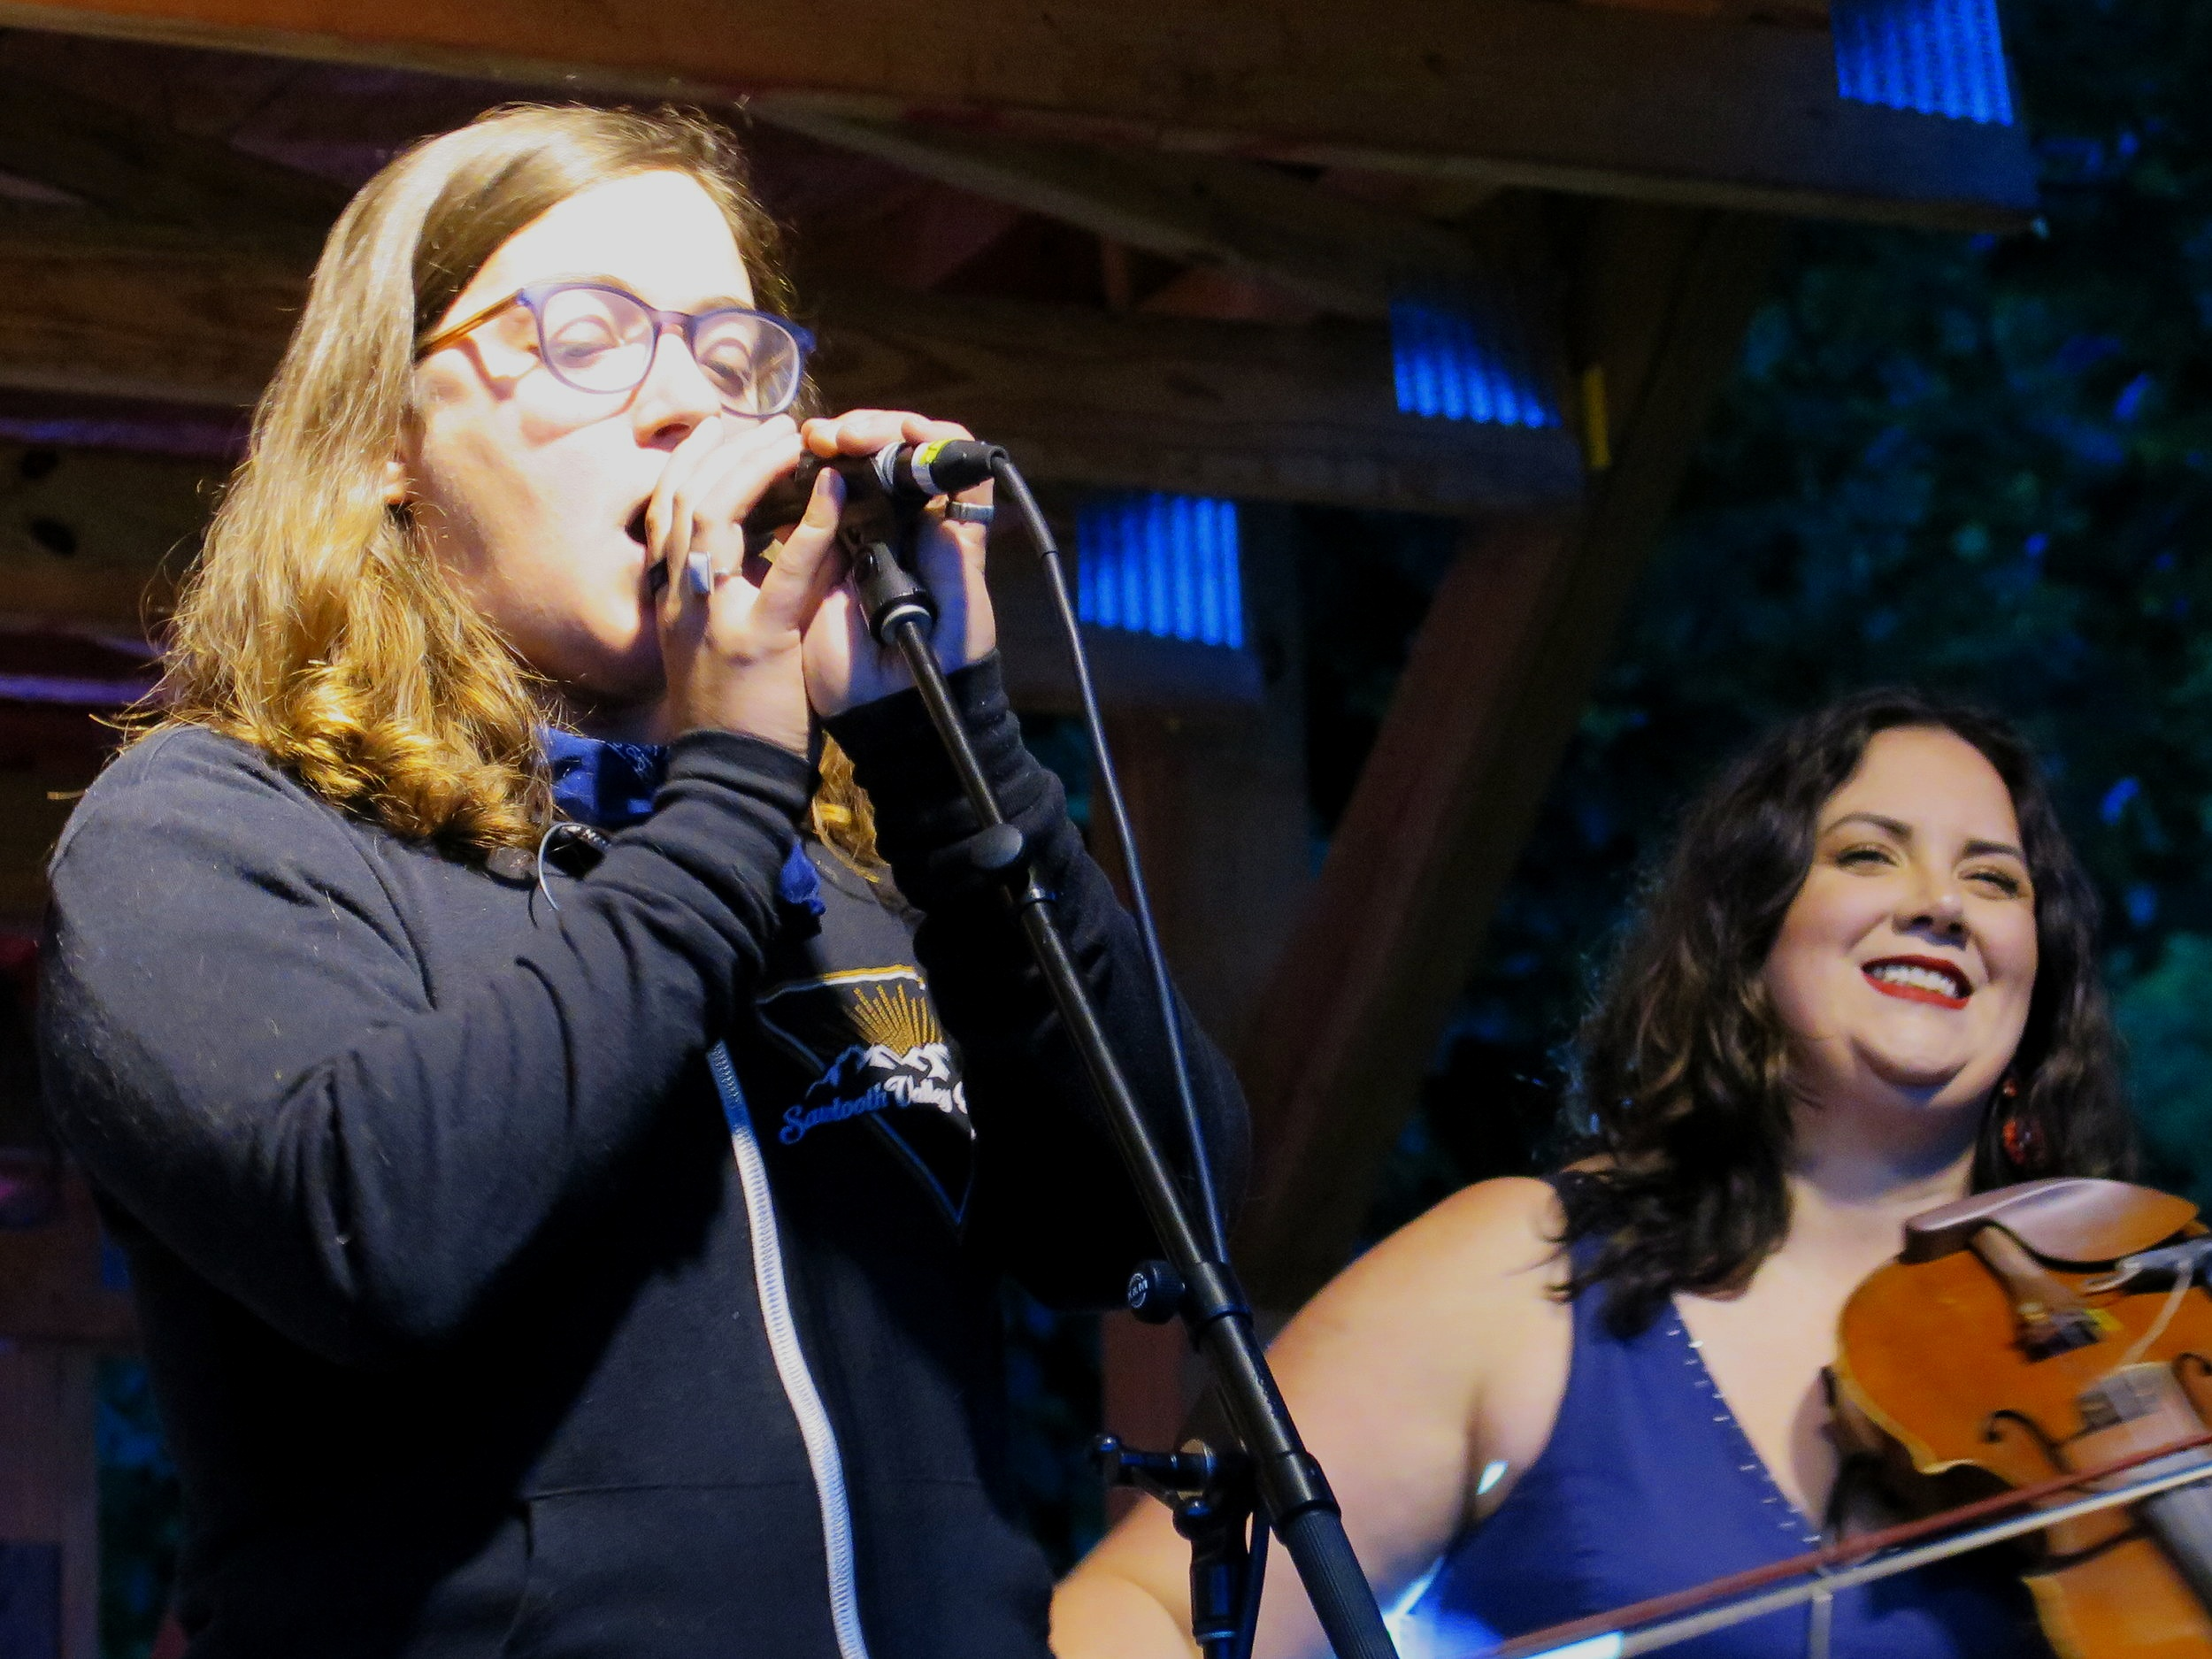 """Mimi Naja of the band Fruition sings """"White Rabbit"""" as Allie Krall of Yonder Mountain String Band plays fiddle at Cold Mountain Music Festival 6-1-19"""